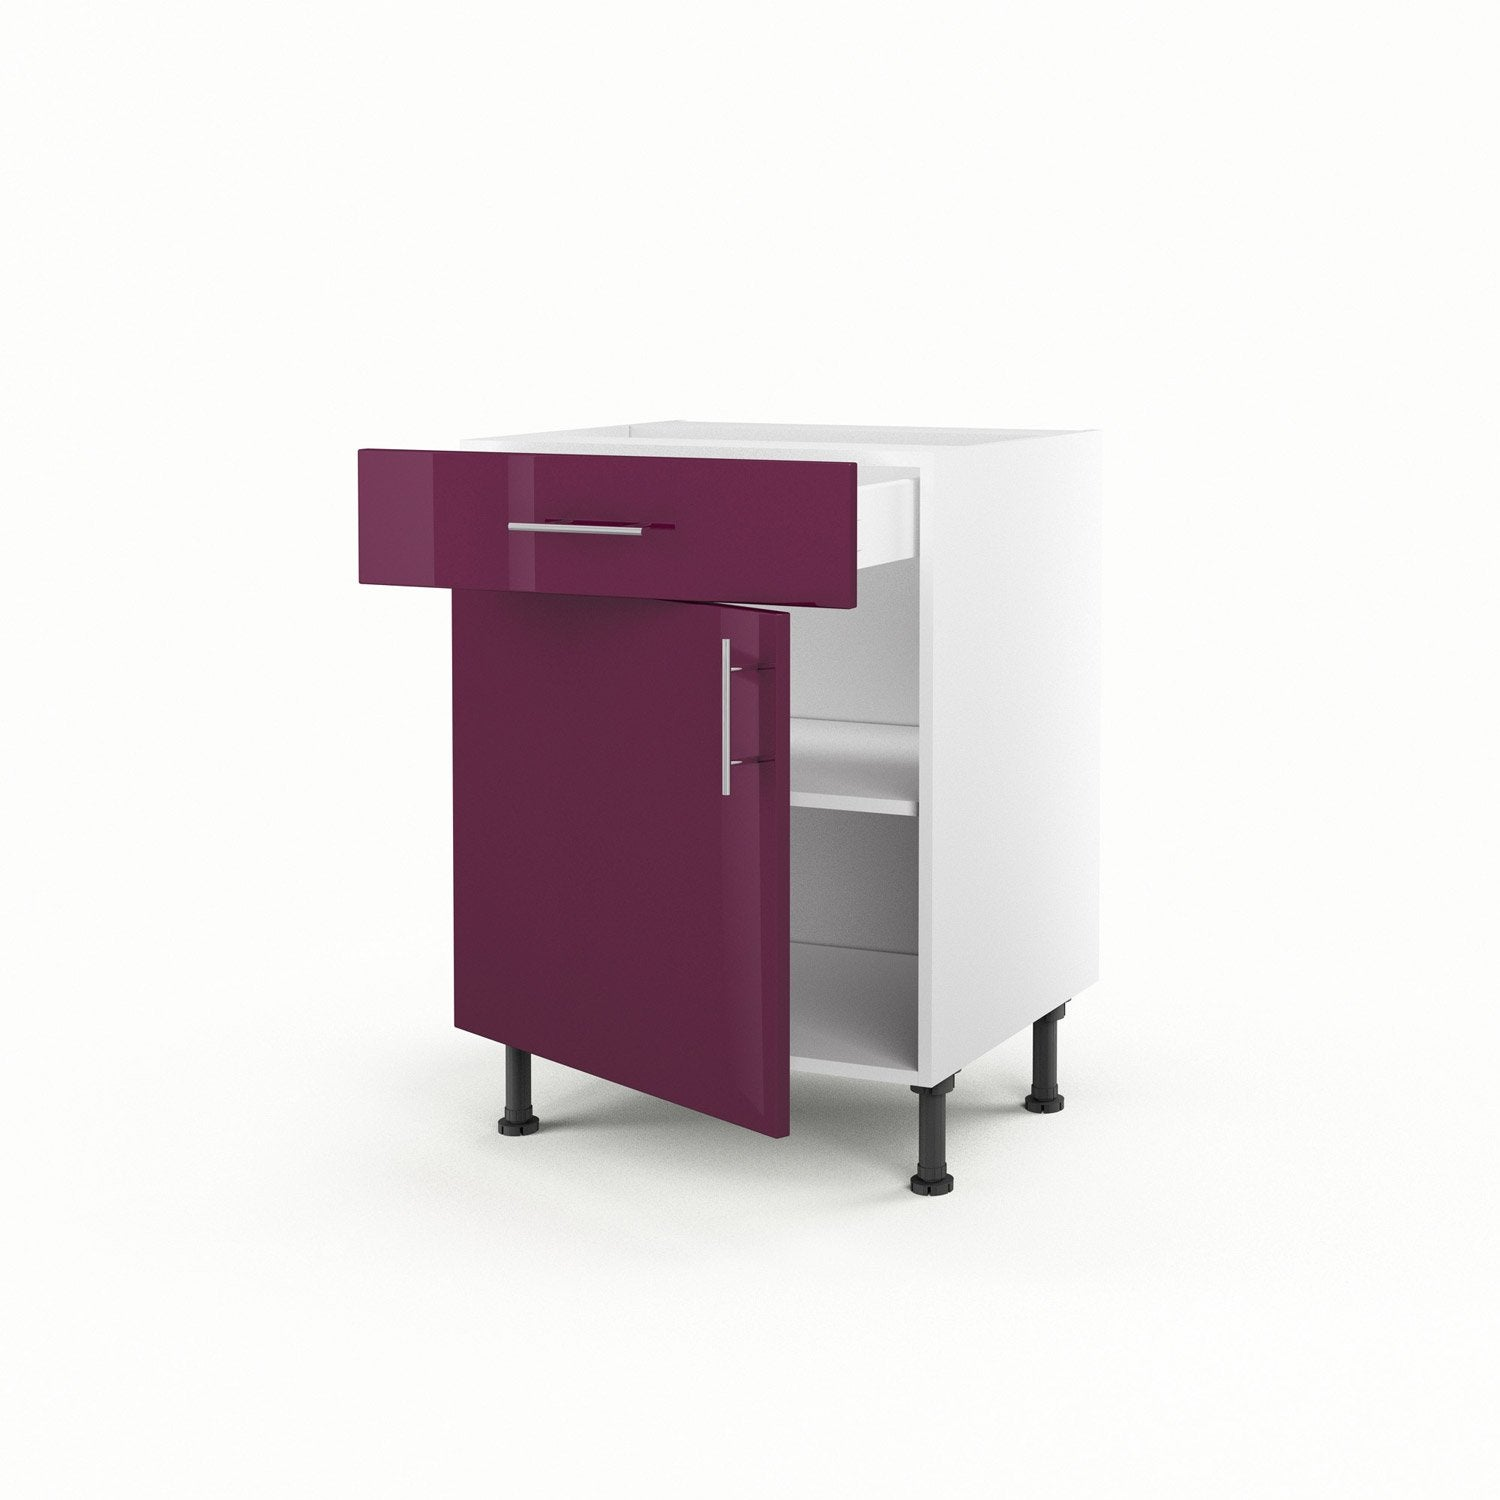 meuble de cuisine bas violet 1 porte 1 tiroir rio x x cm leroy merlin. Black Bedroom Furniture Sets. Home Design Ideas